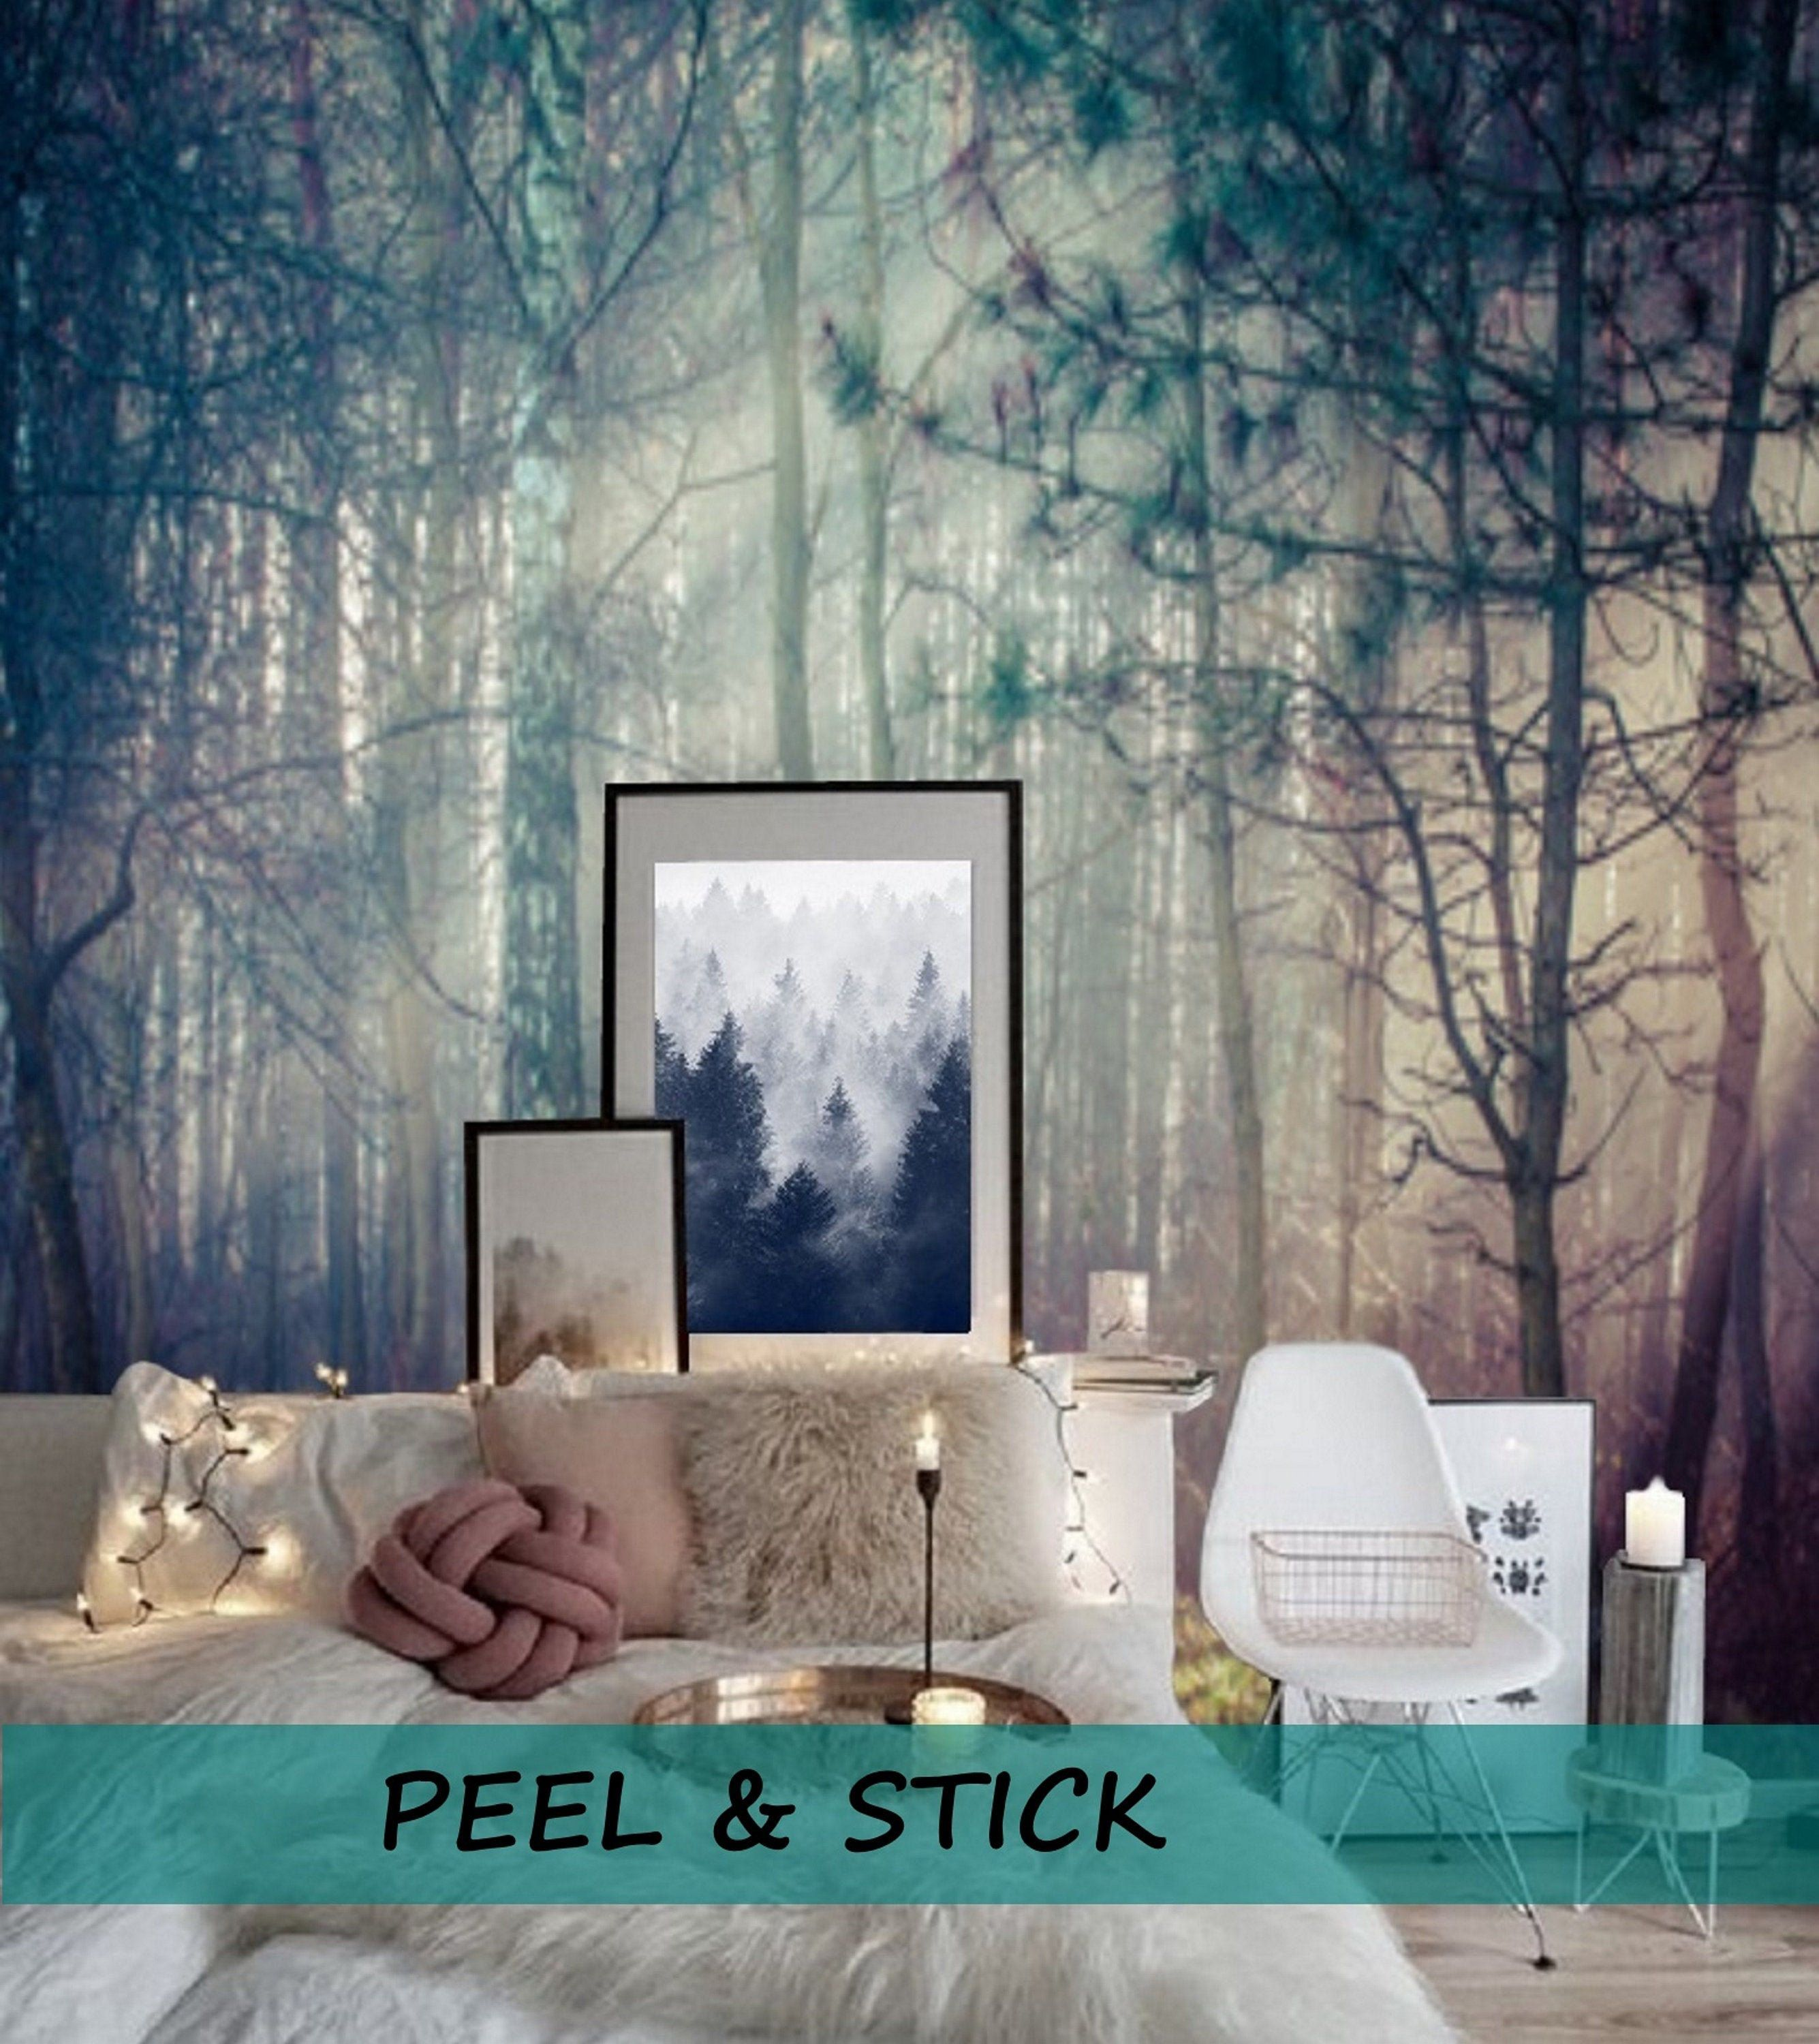 Peel And Stick Wall Paper Boho Misty Forest Wallpaper Wall Mural Removable Wallpaper Peel Stick Mural Pine Tree Wallpaper Nature 103 Forest Wall Mural Forest Wallpaper Wall Murals